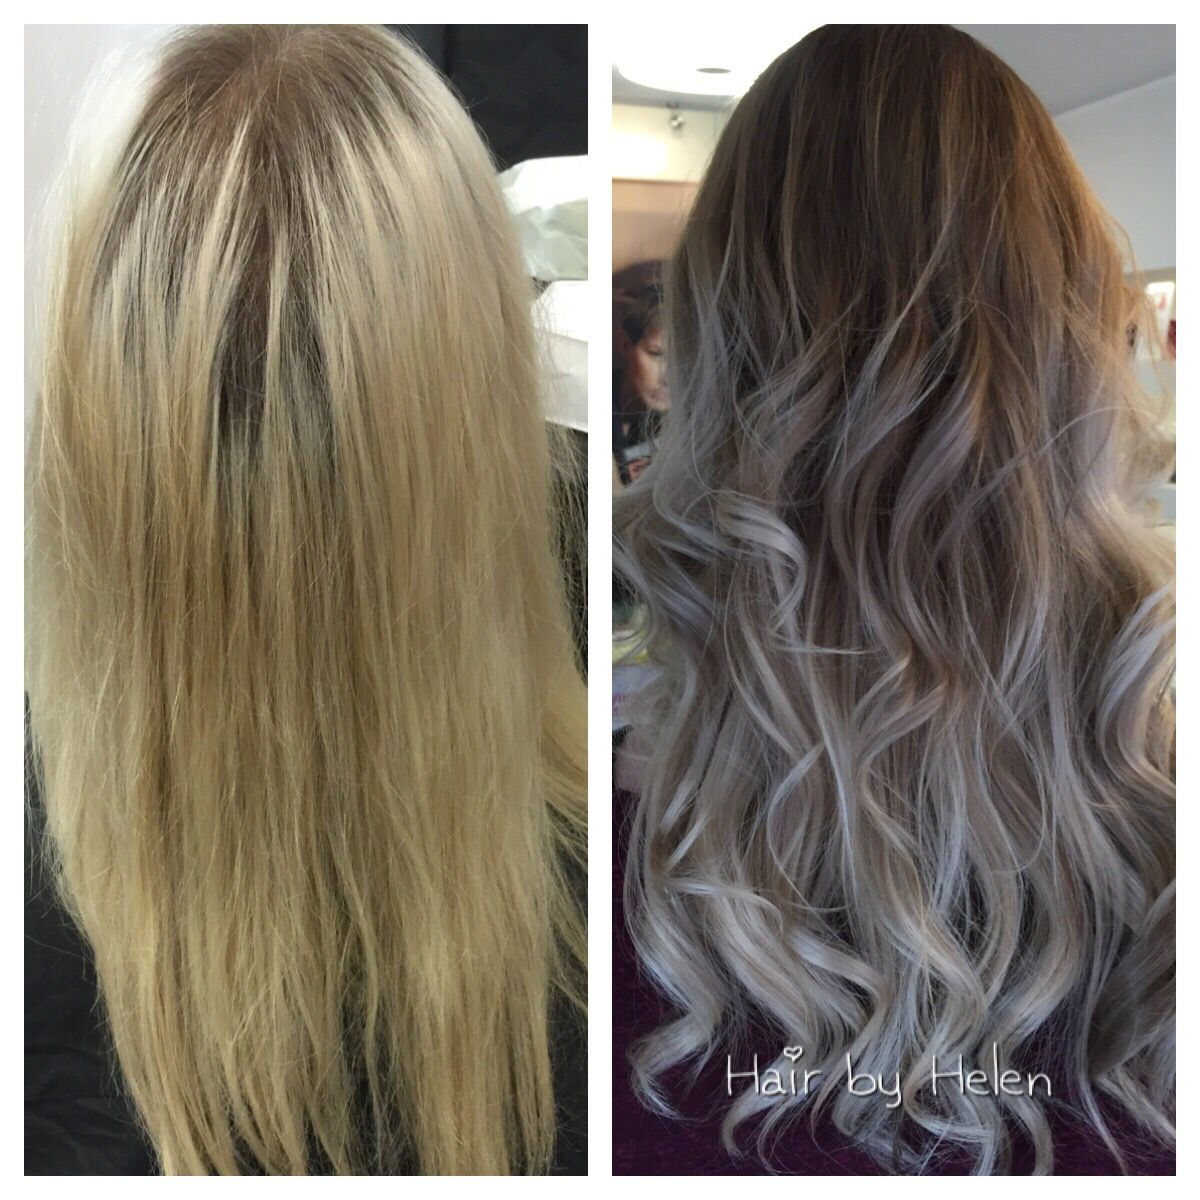 freelights Olaplex painting wella ralphlehmannfriseure longhair  before \u0026 after